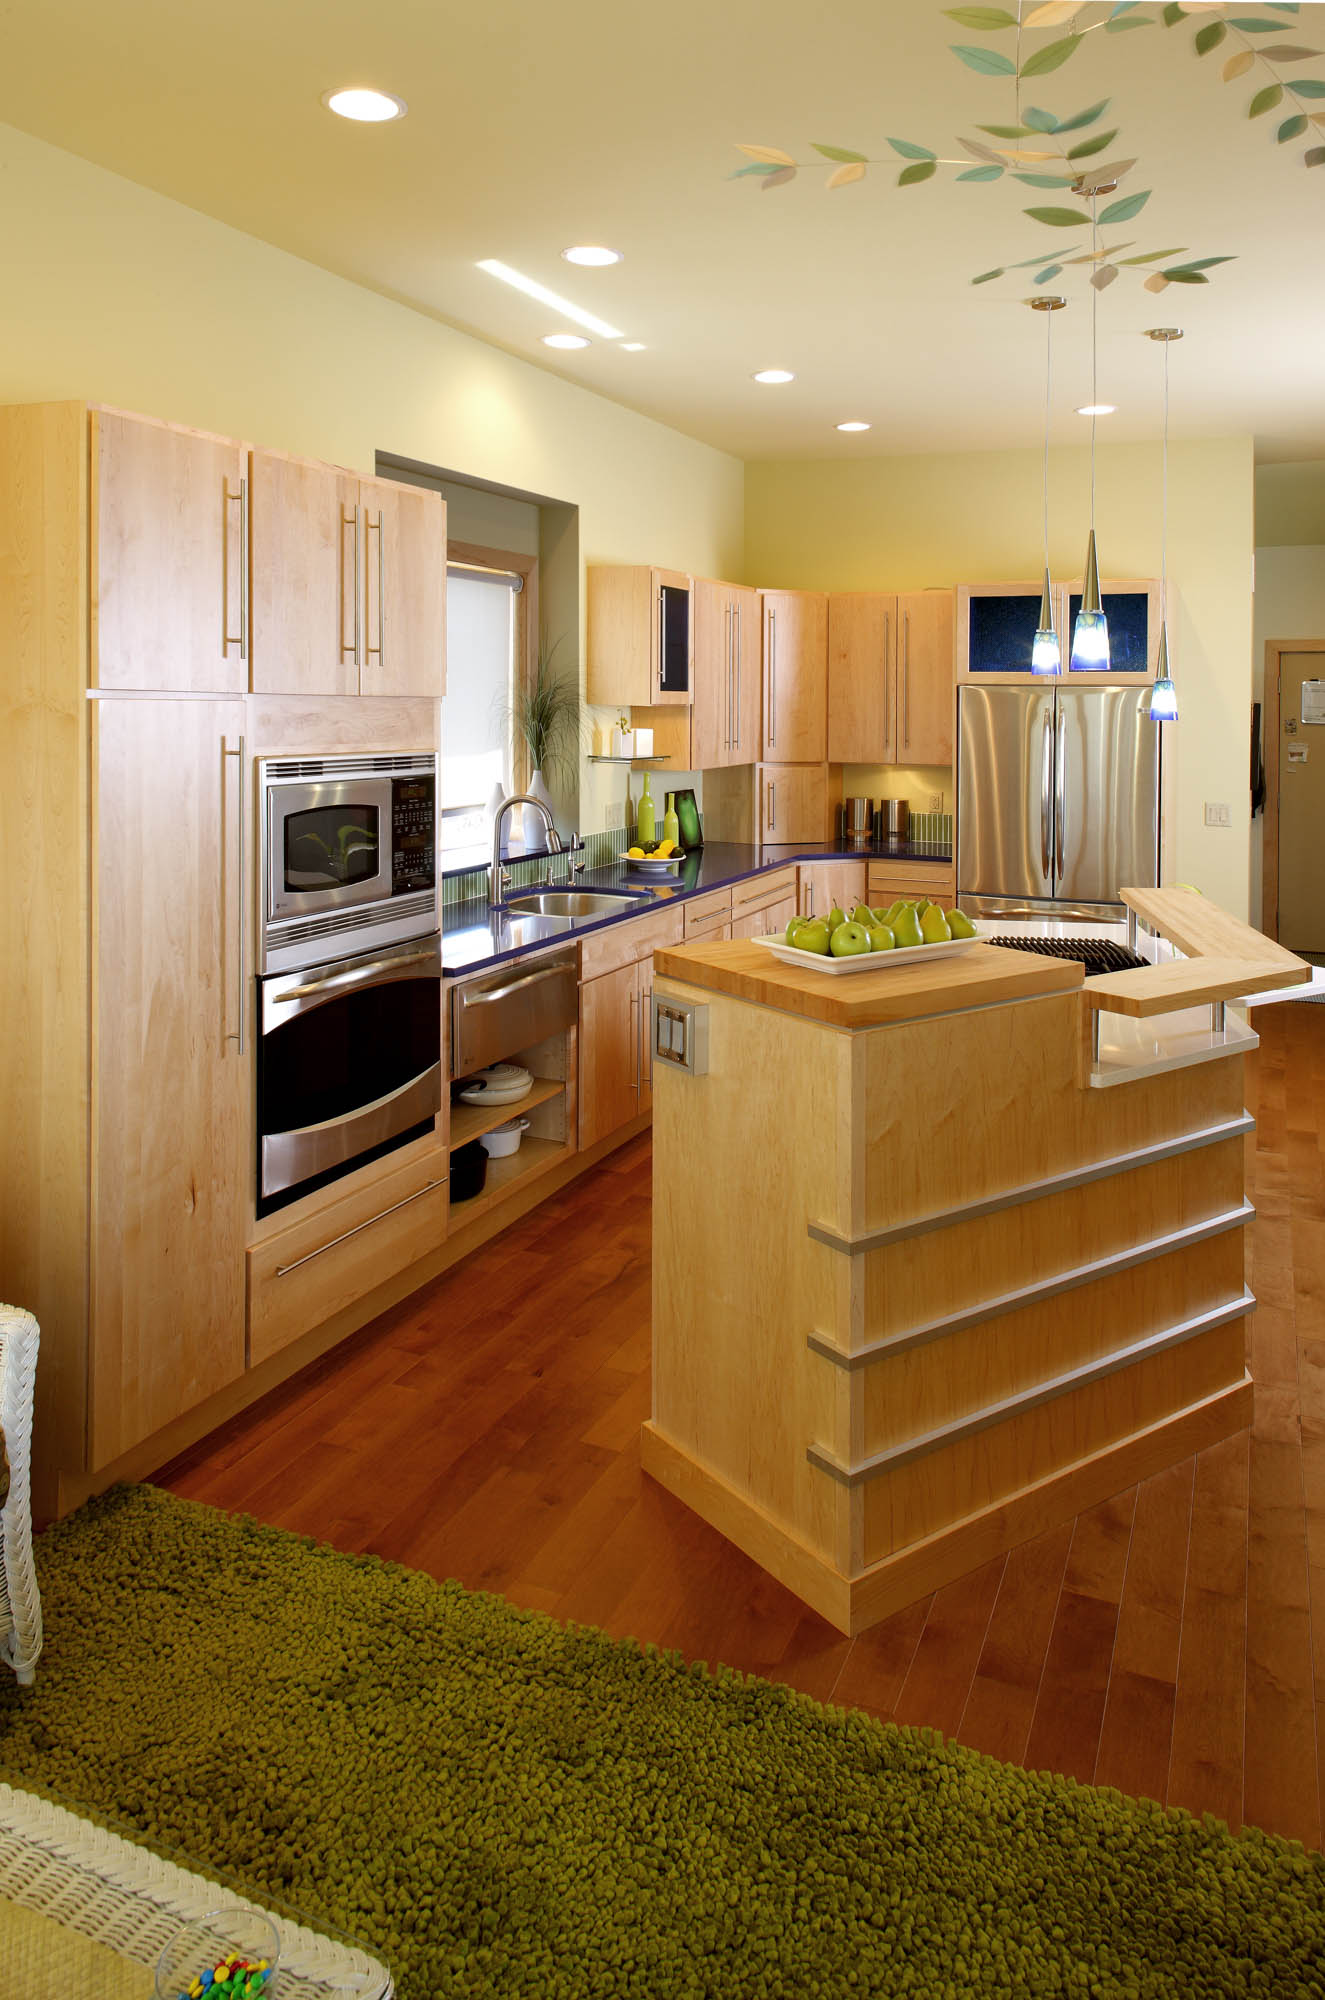 Stained kitchen cabinets in Natural by Showplace Cabinetry - view 2